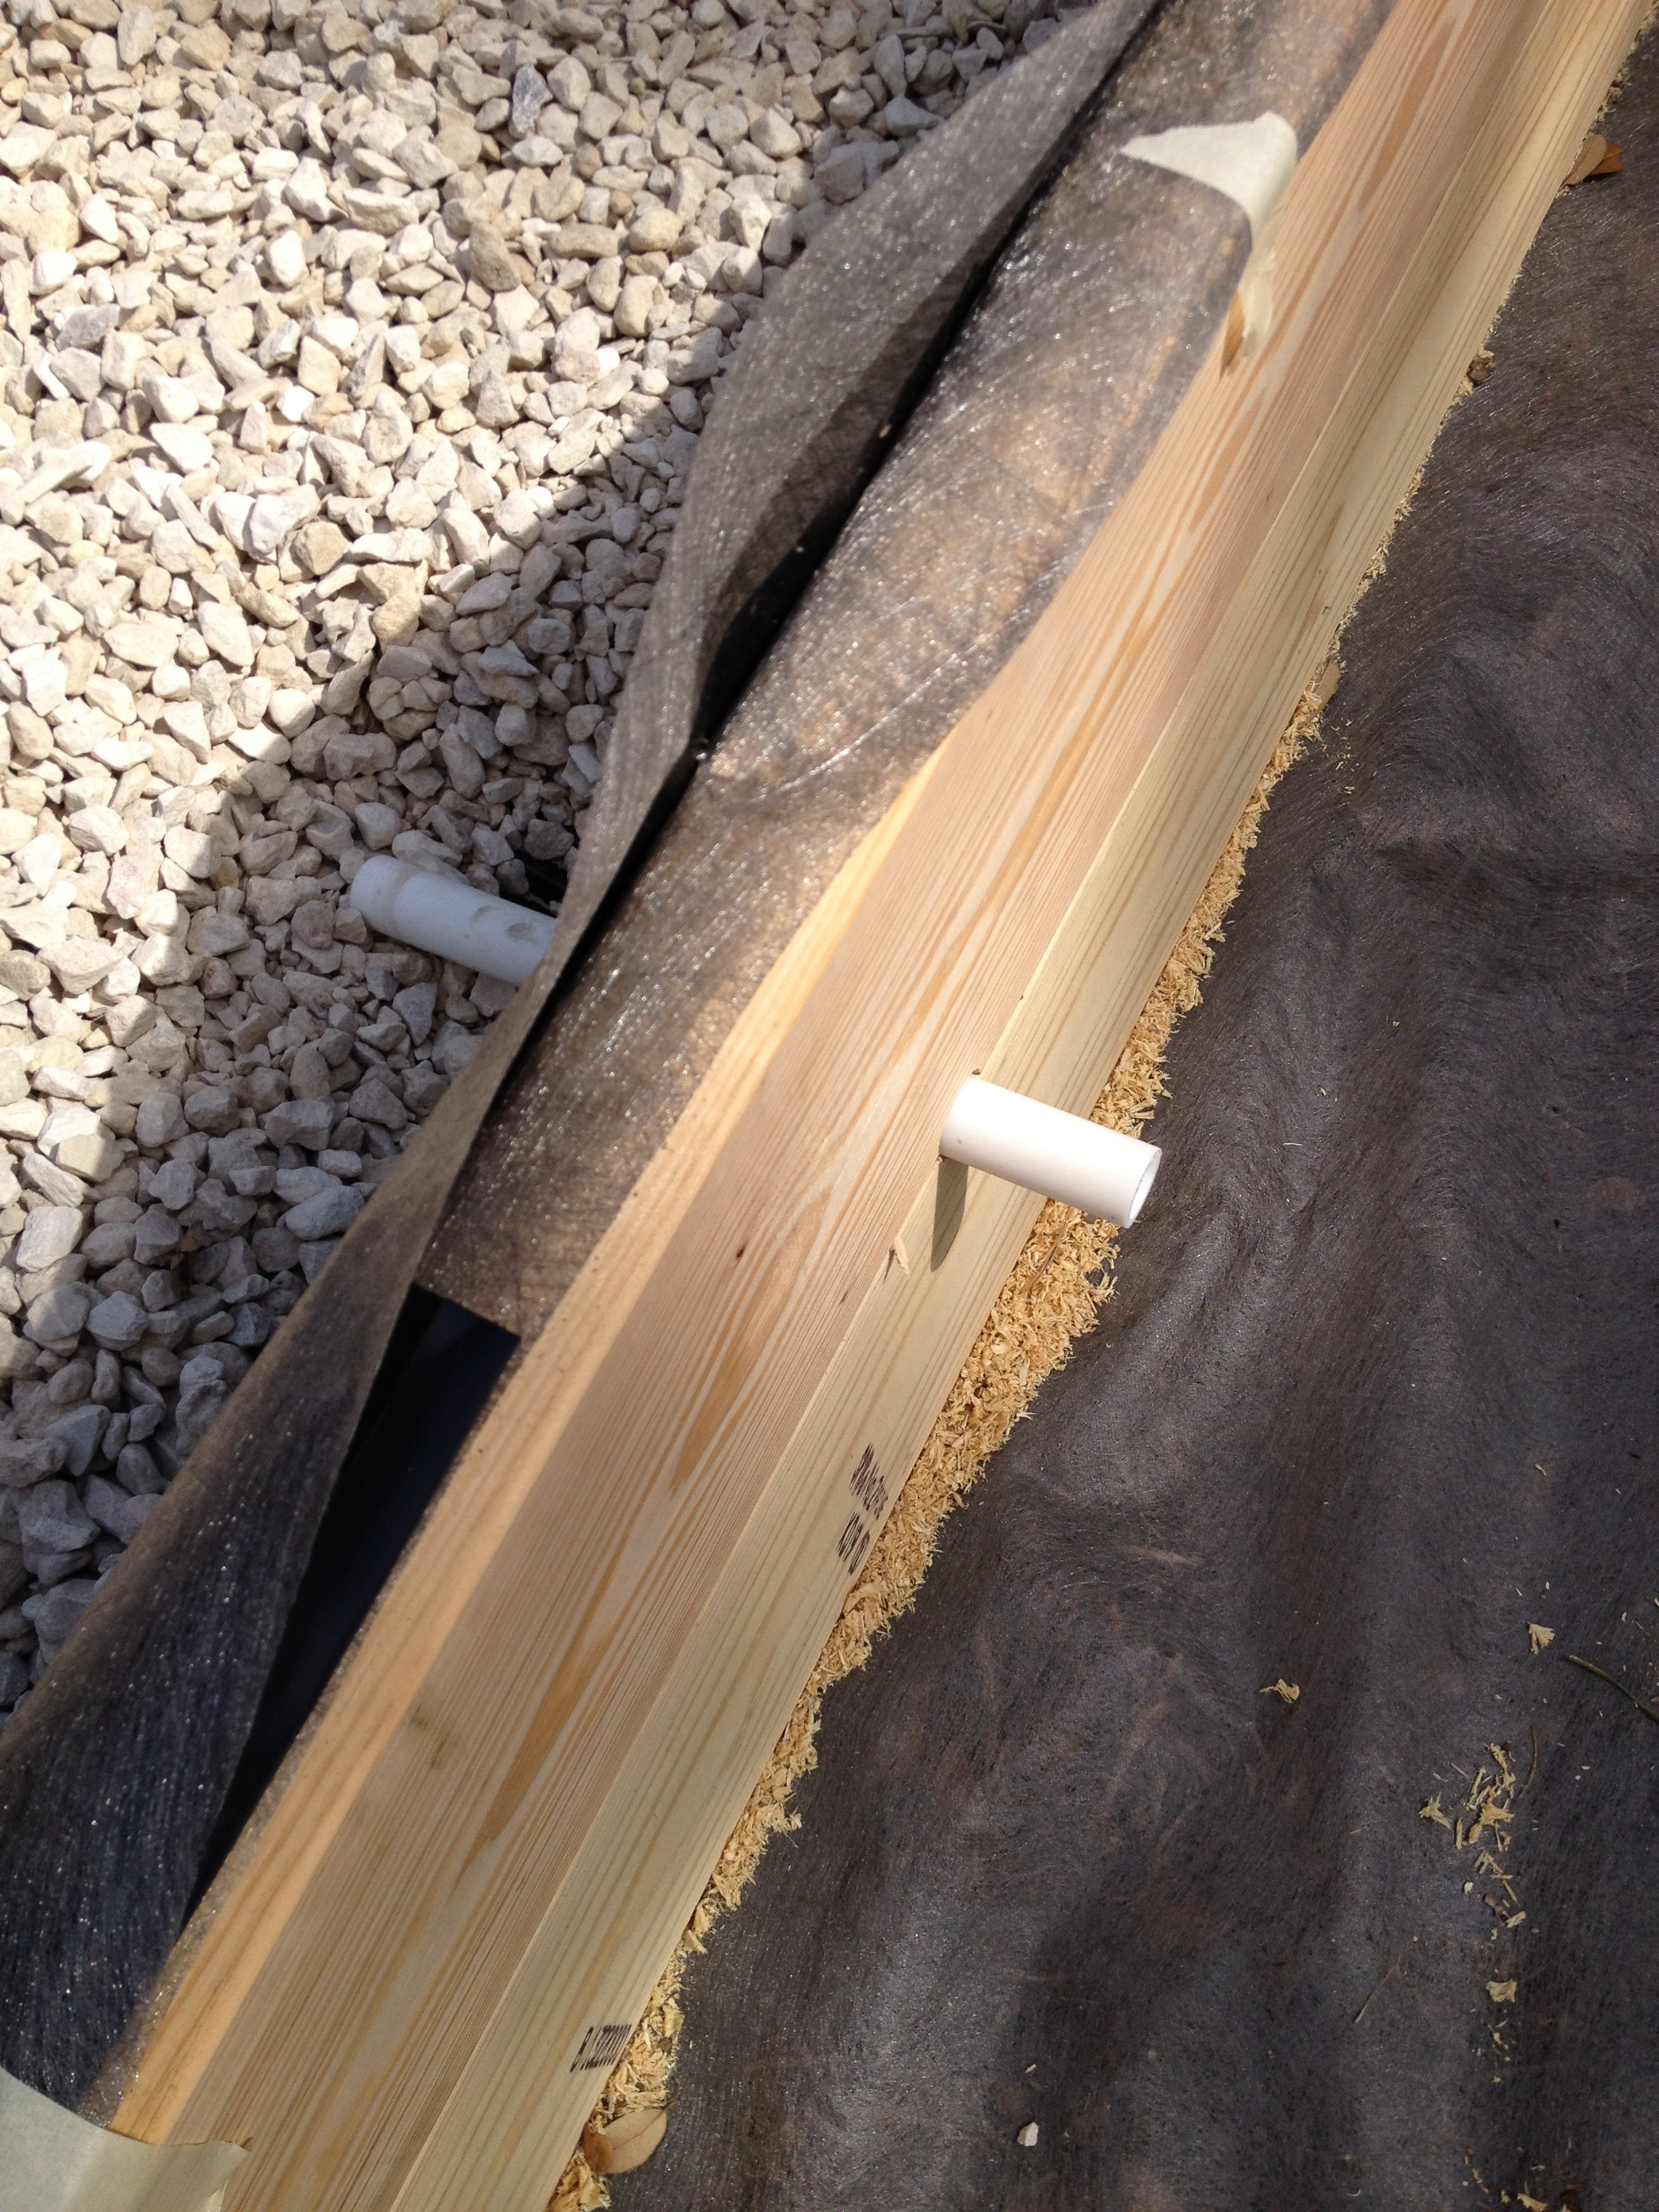 Another pic of the drain pipe